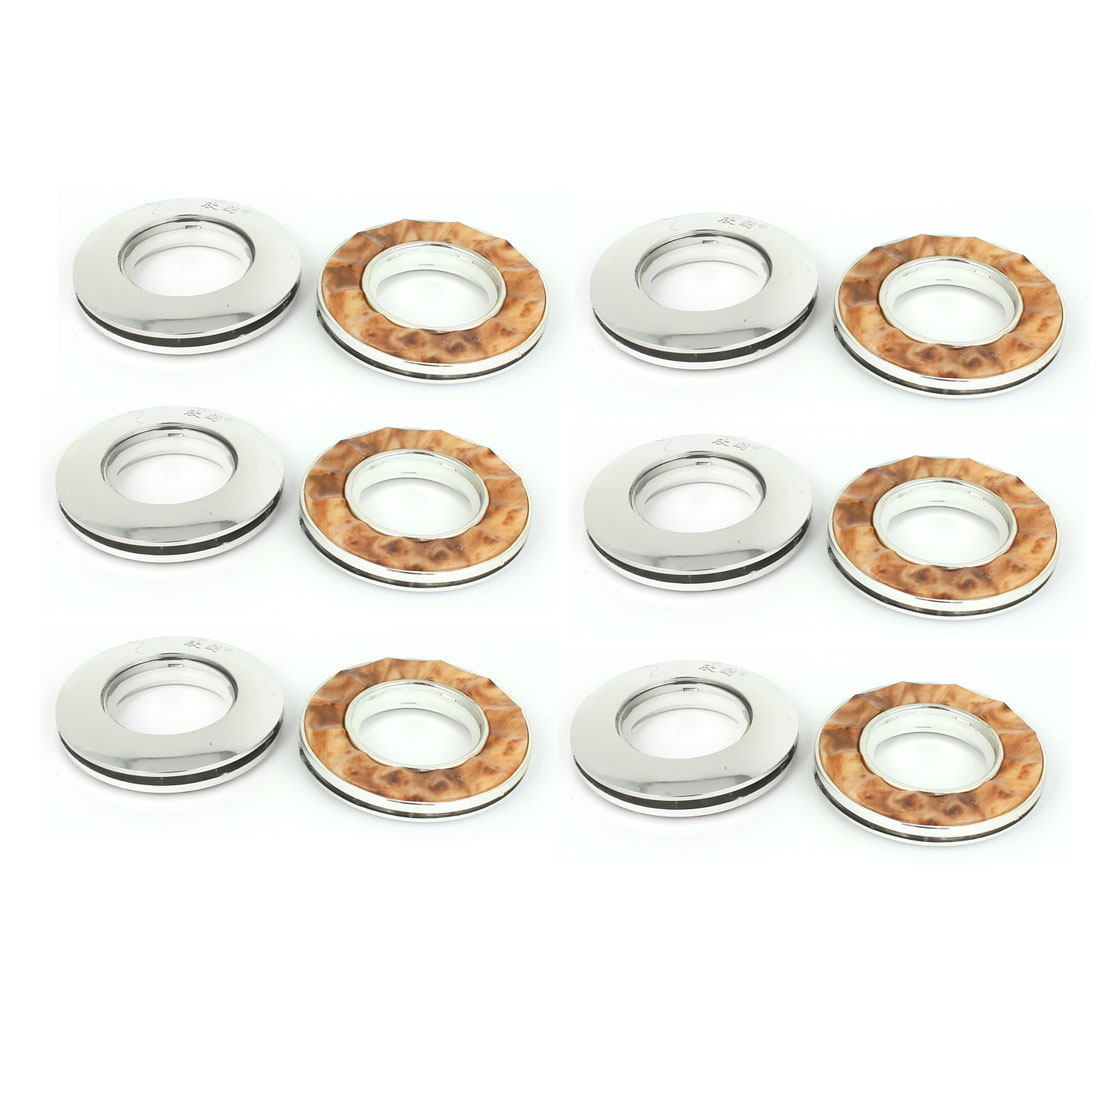 12 Pcs Round Shape Silver Tone Pink Plastic Curtain Rings 40mm Inner Dia